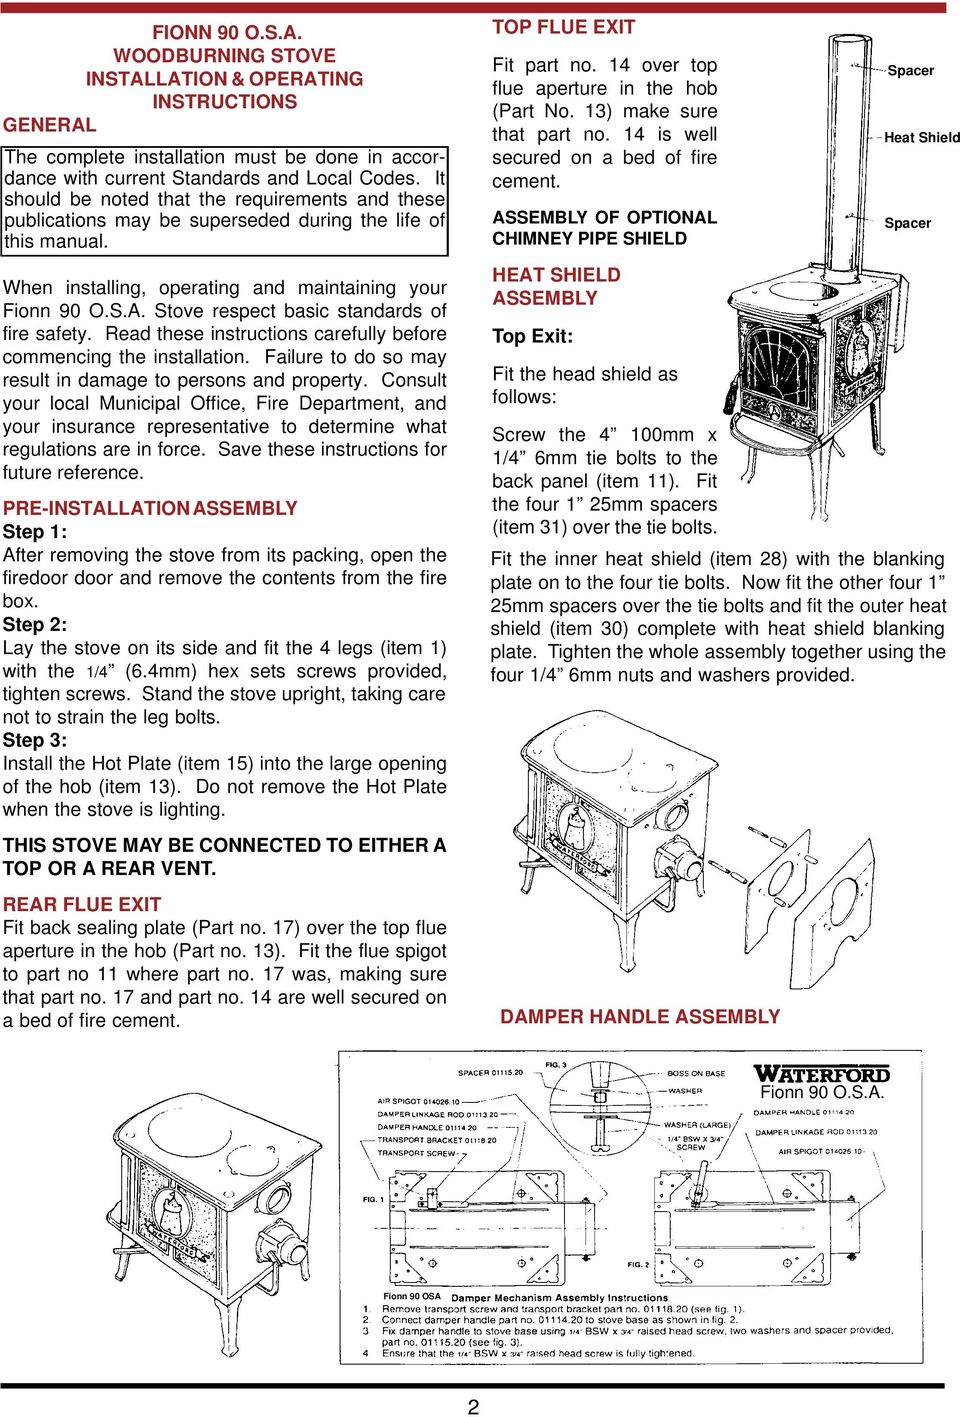 Fionn 90 Osa Woodburning Stove Pdf Robert S Oven Wiring Diagram Respect Basic Standards Of Fire Safety Read These Instructions Carefully Before Commencing The Installation